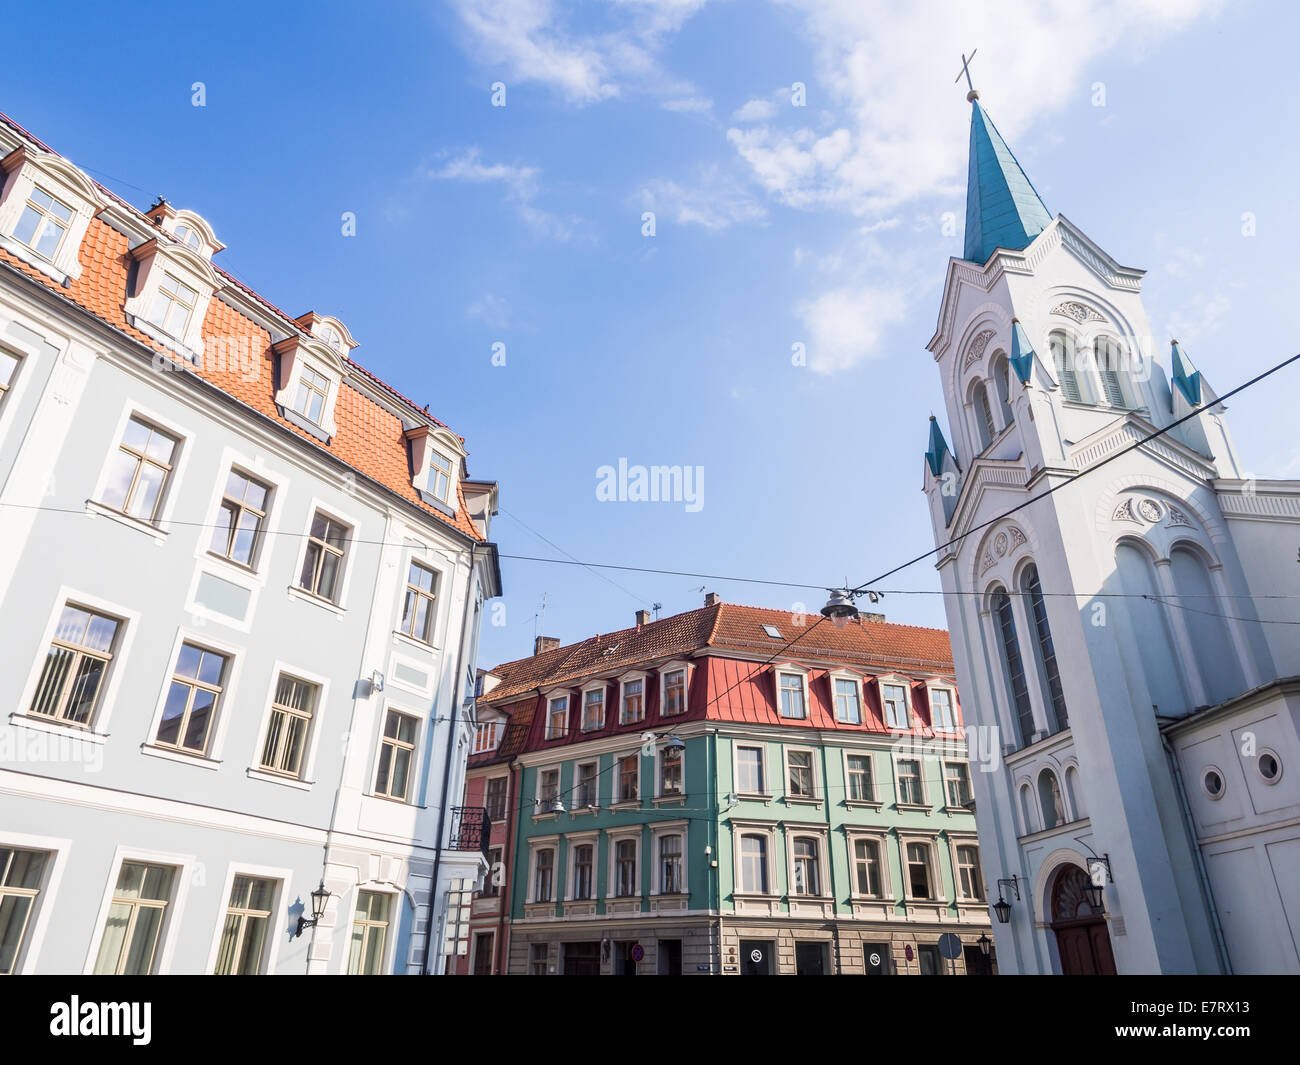 Virgin of Anguish church and architecture of the Old Town of Riga, Latvia. - Stock Image